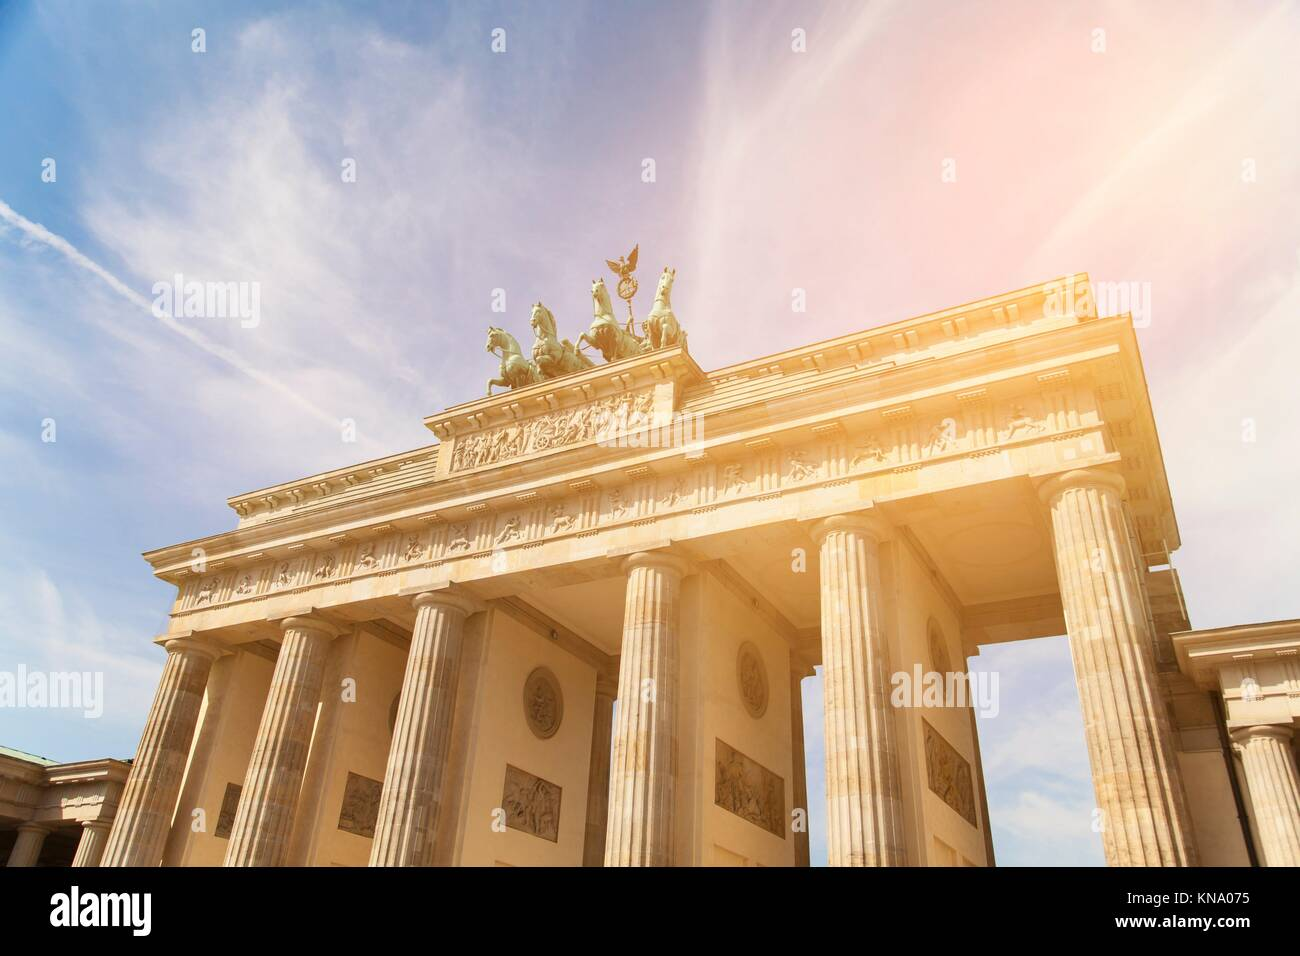 Brandenburger gate and sunlight. - Stock Image